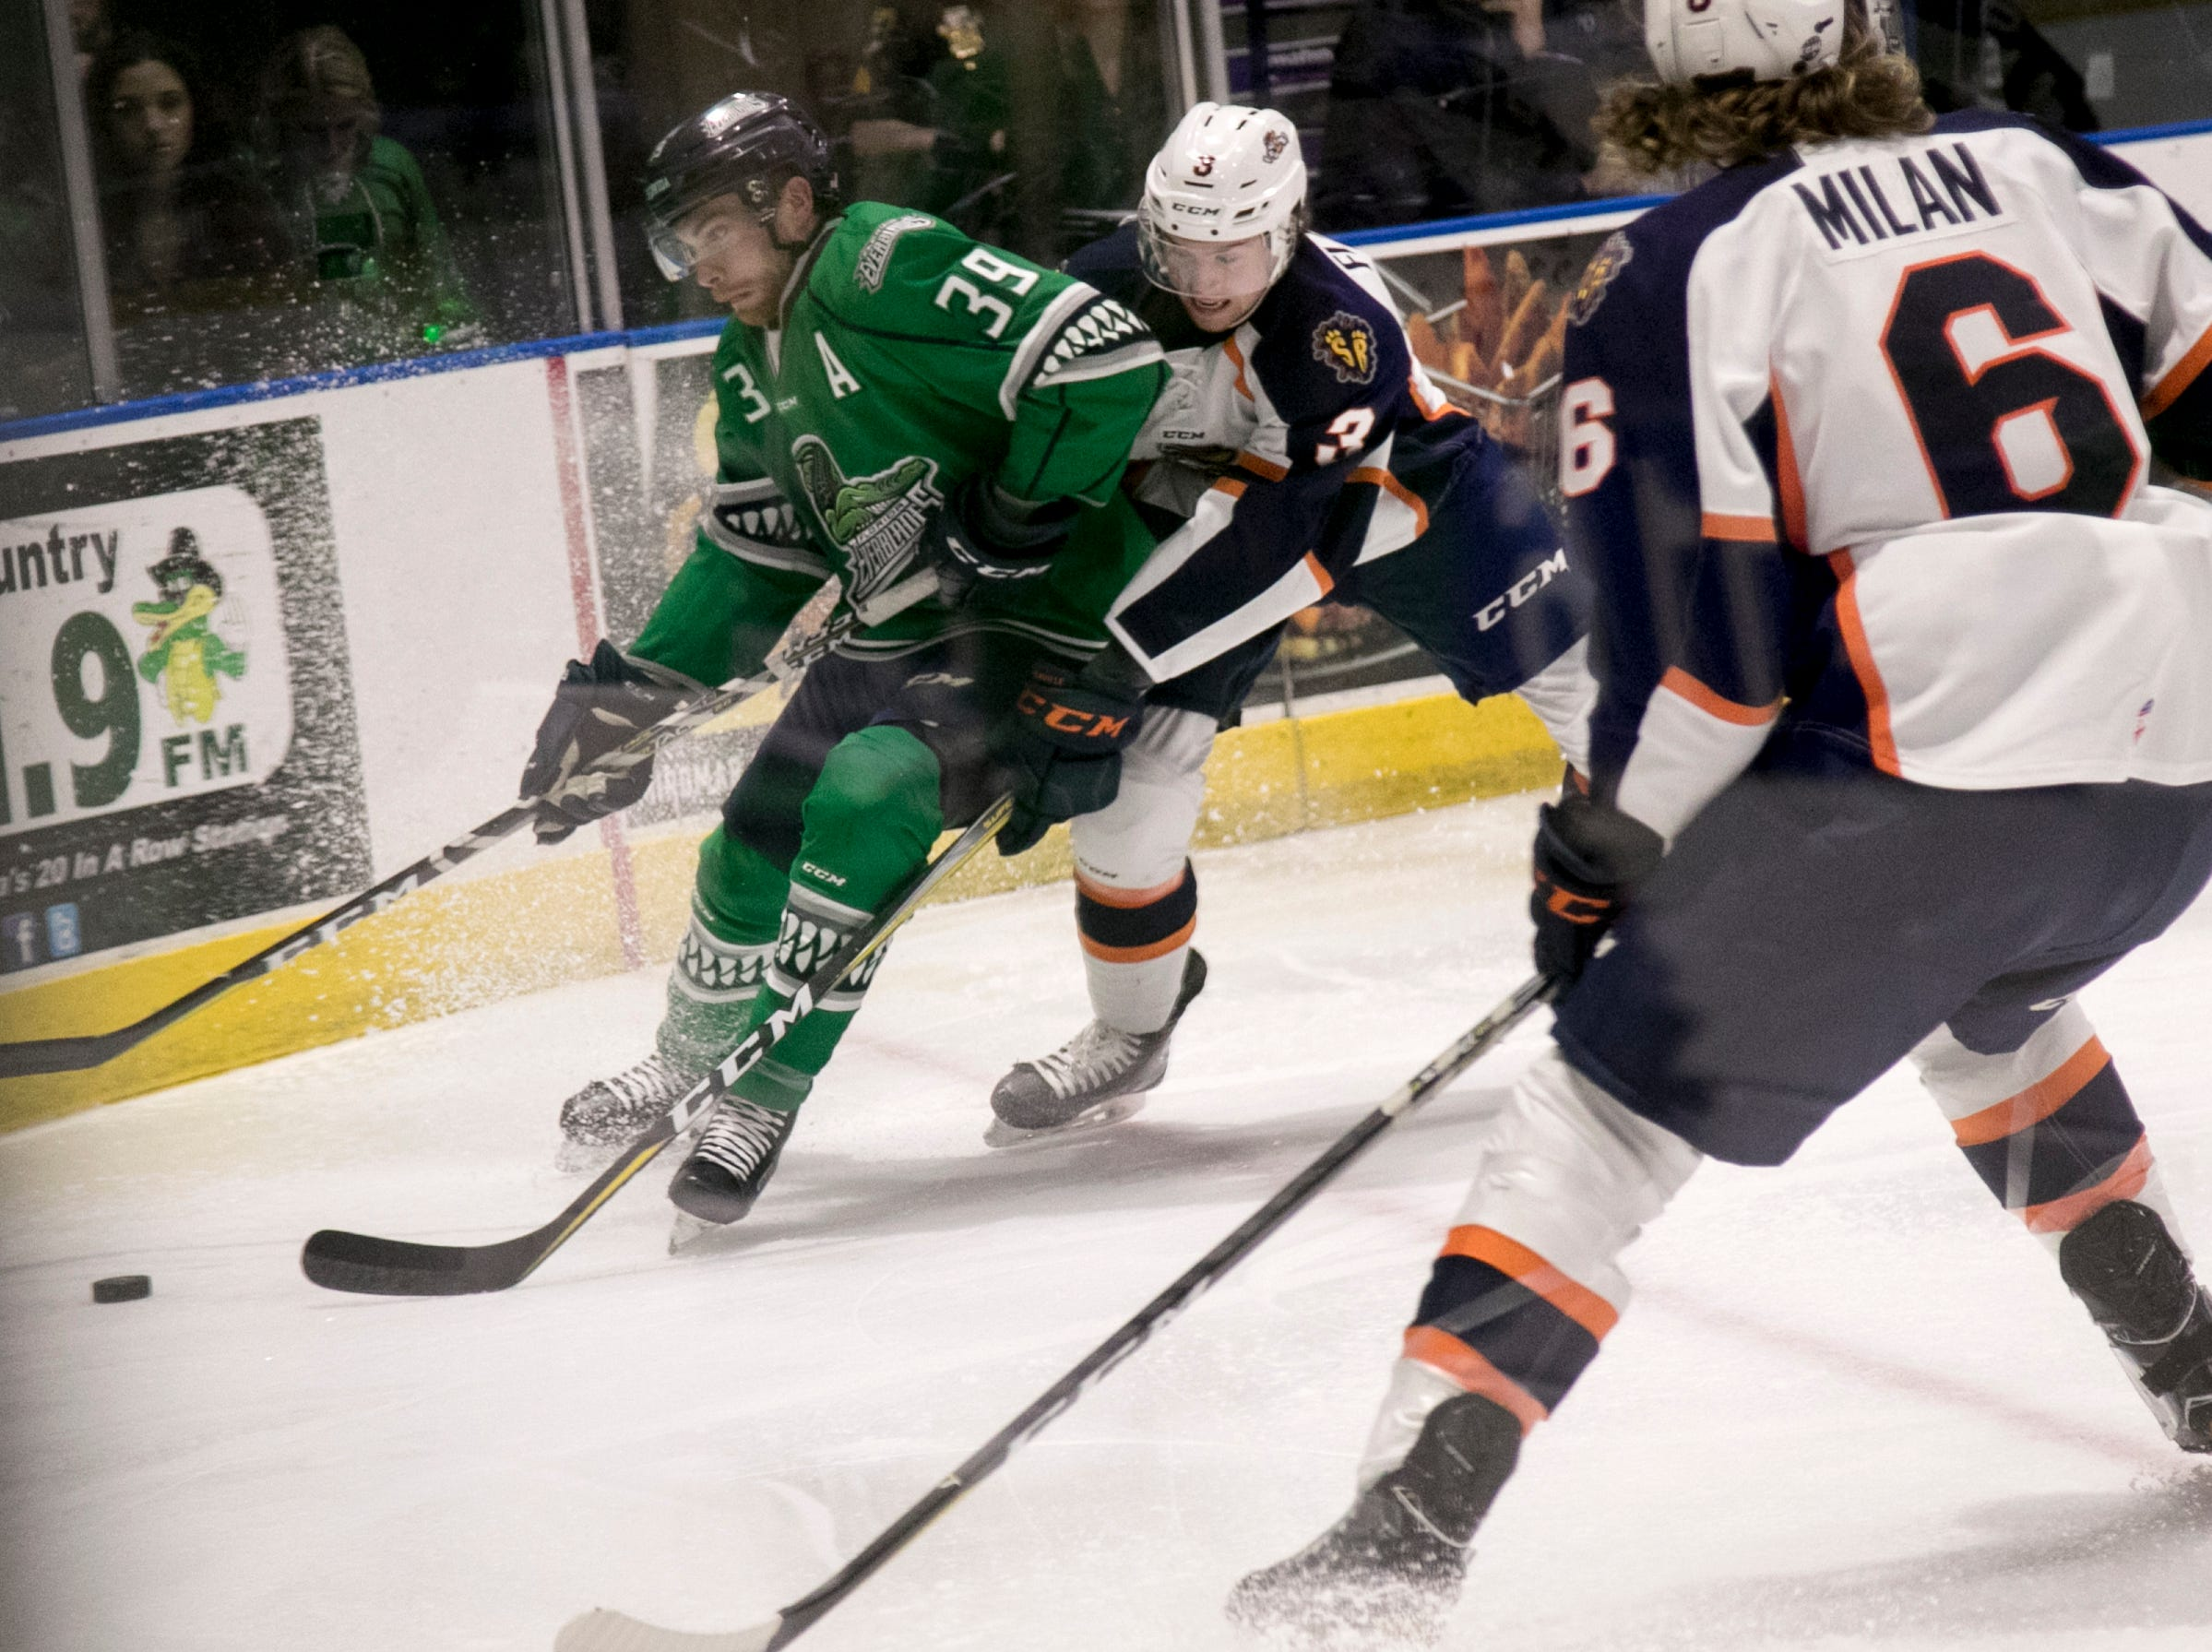 Joe Cox of the Everblades holds off Sean Flanagan of Greenville in the first period on Friday night, January 11, 2019, at Hertz Arena in Estero.